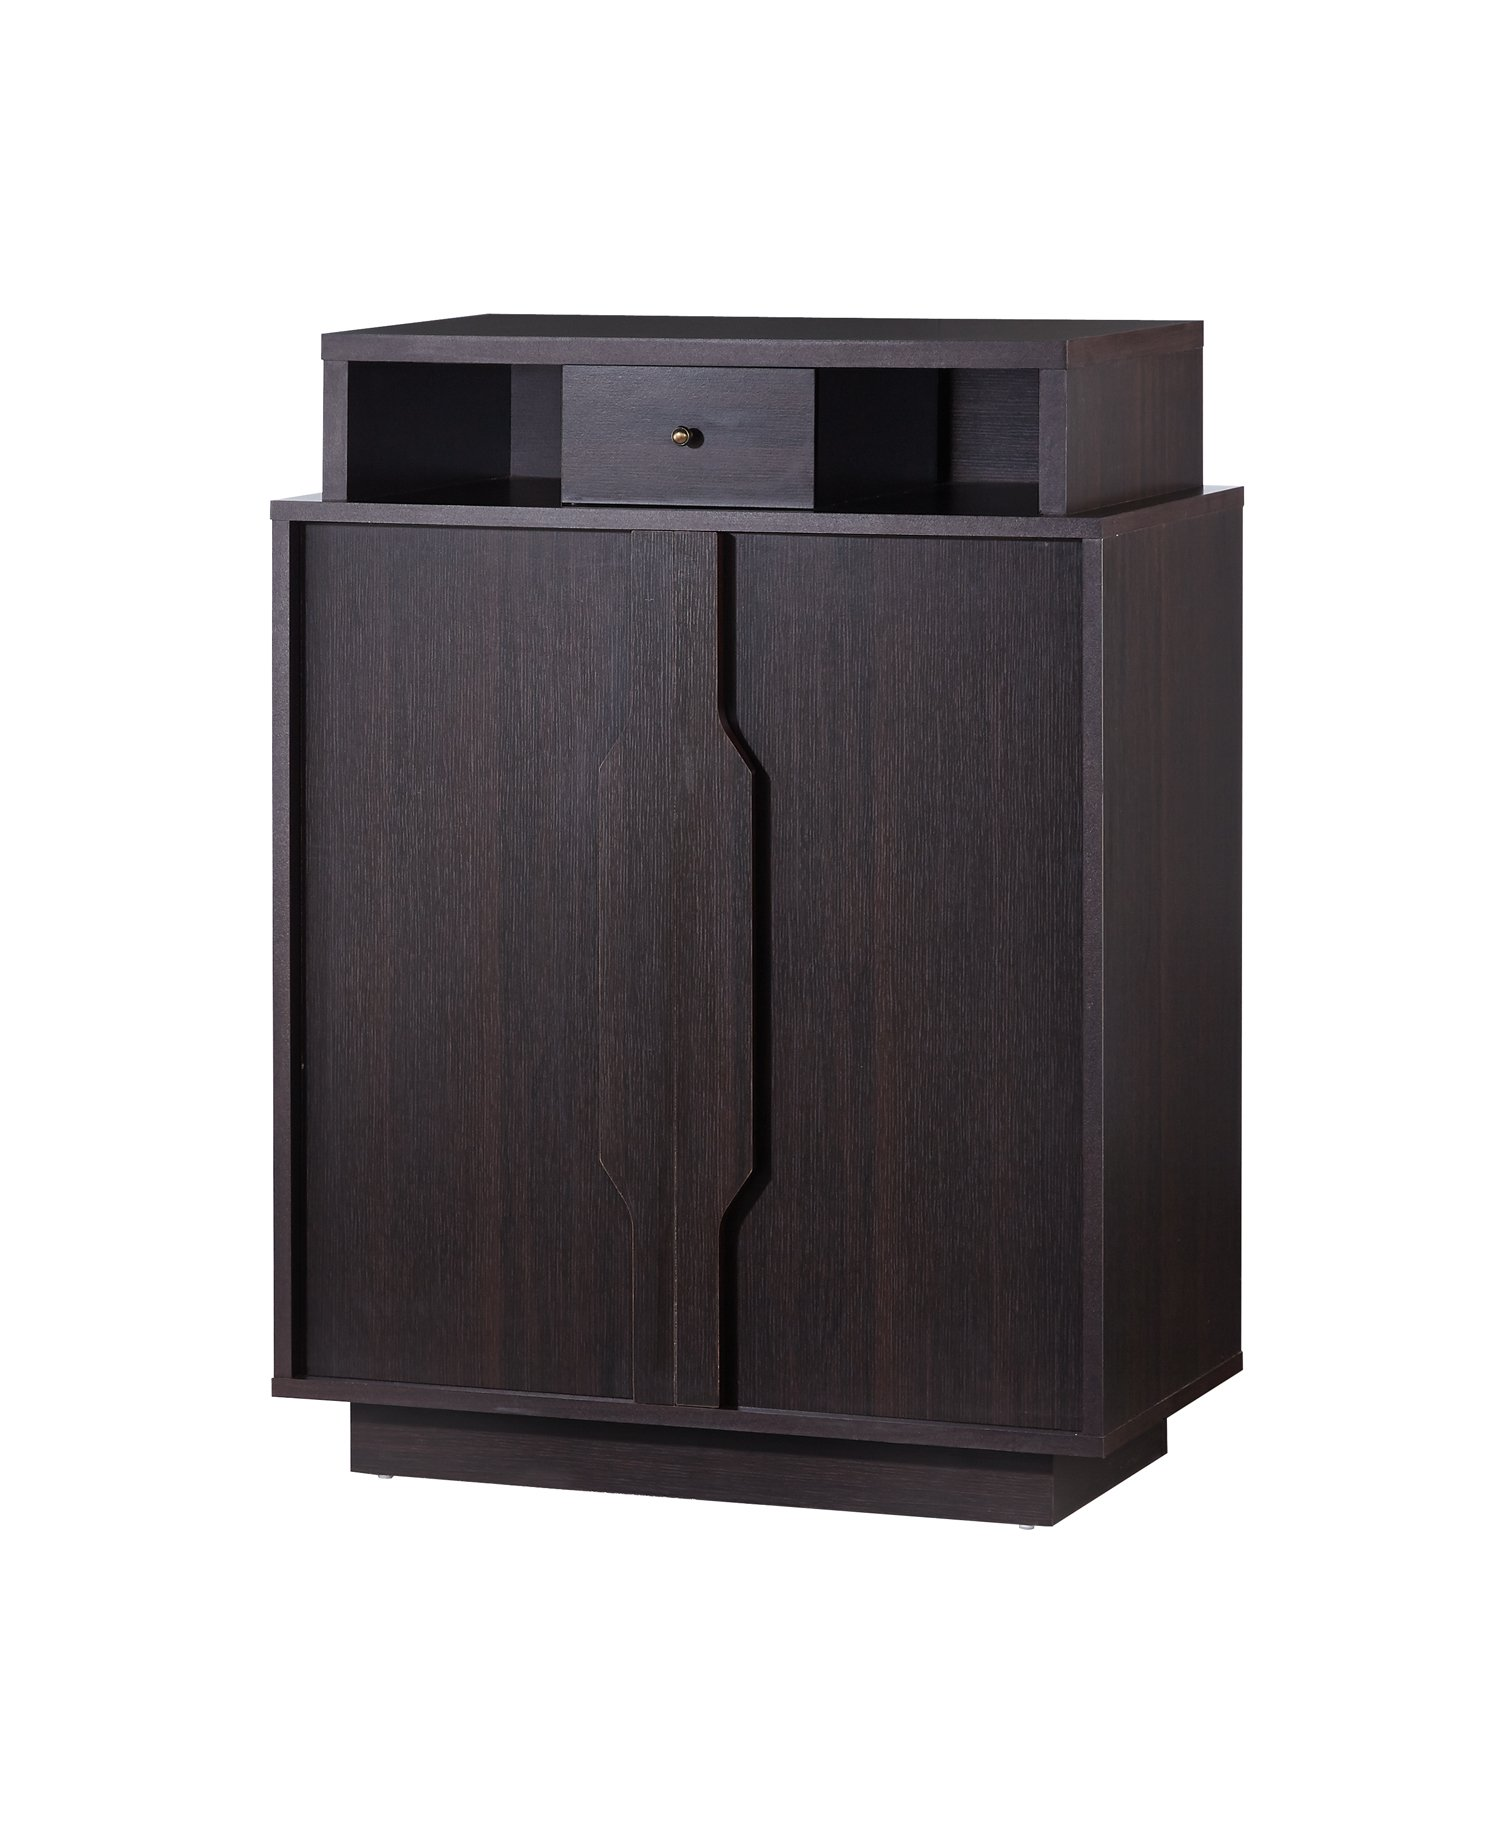 ioHOMES Marnie Modern Shoe Cabinet, Espresso by HOMES: Inside + Out